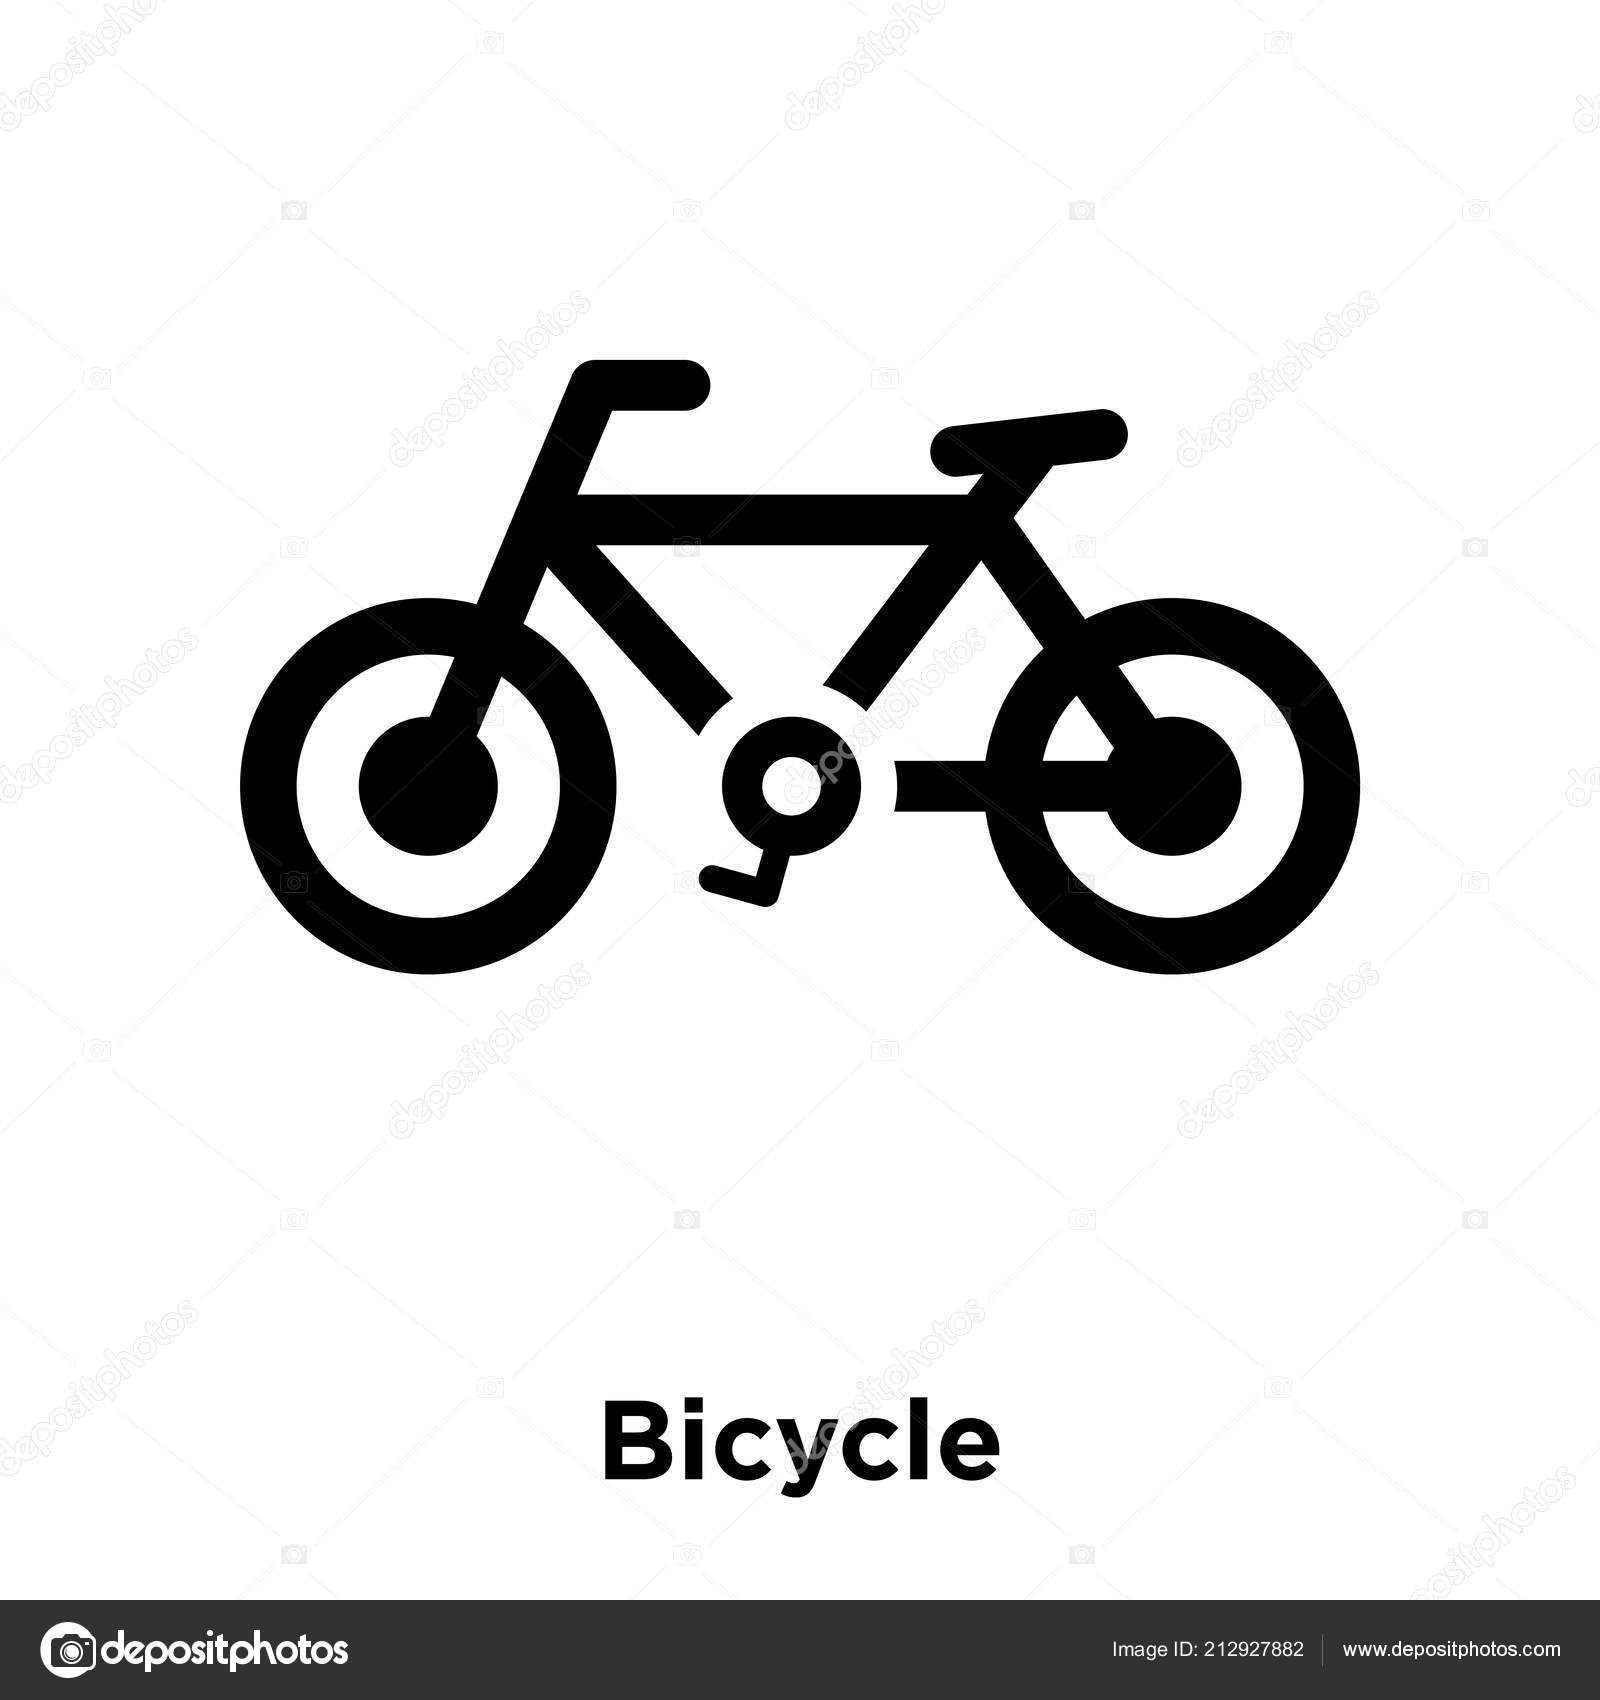 bicycle icon vector isolated